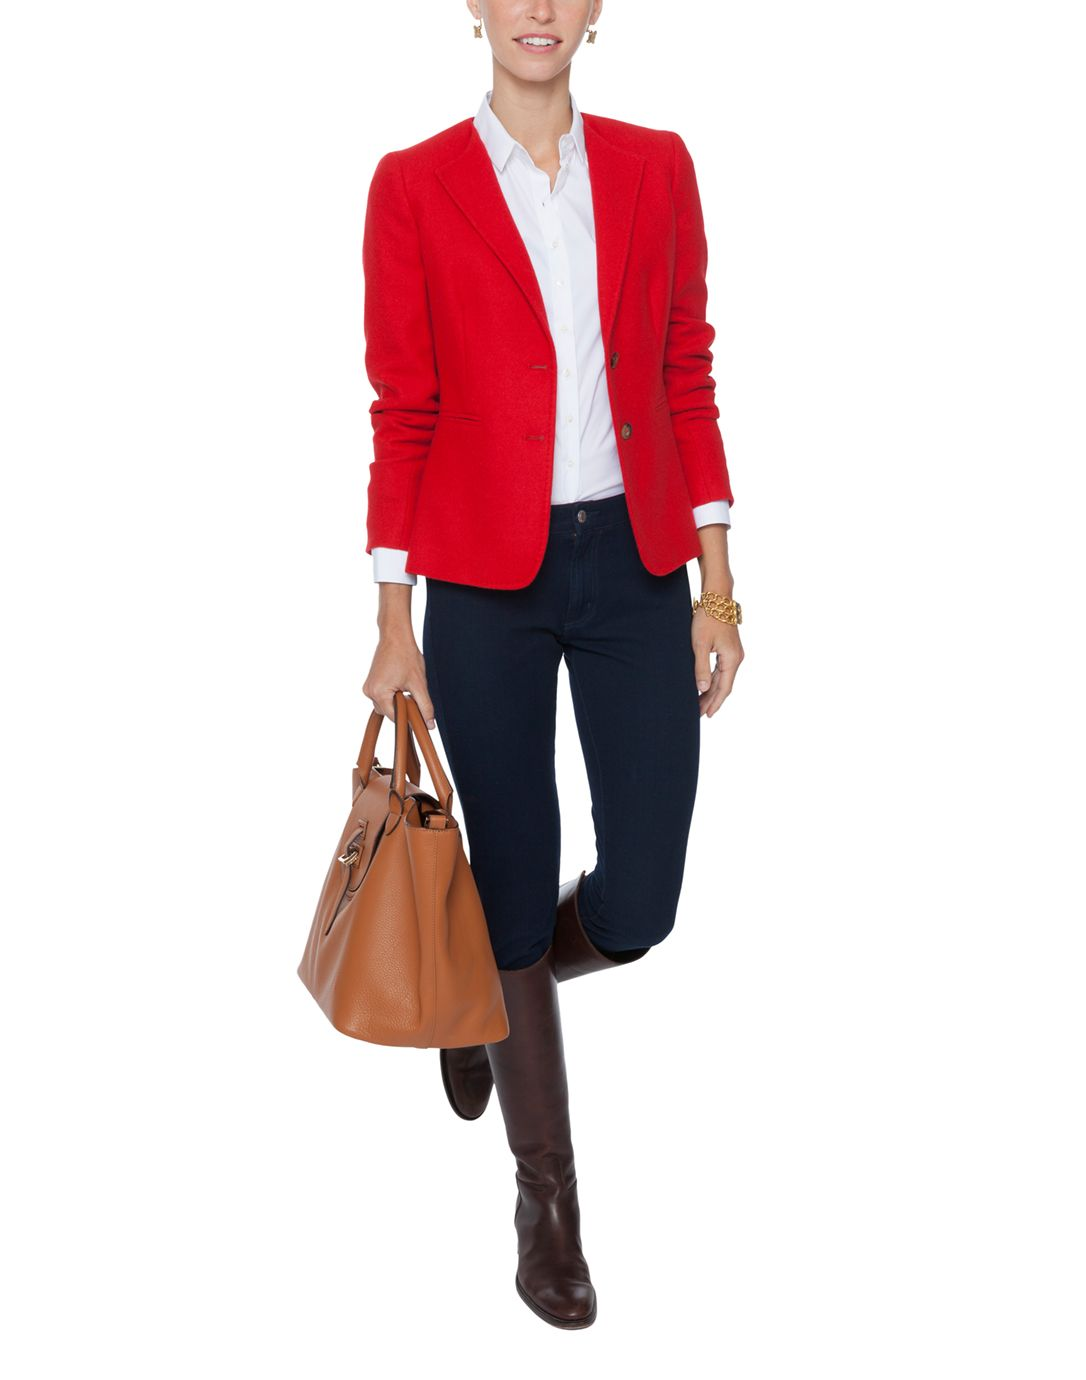 """Jack and tote add polish to the biz casual look; jacket in red """"powers up"""" her presence. www.smartwomenonthego.com"""